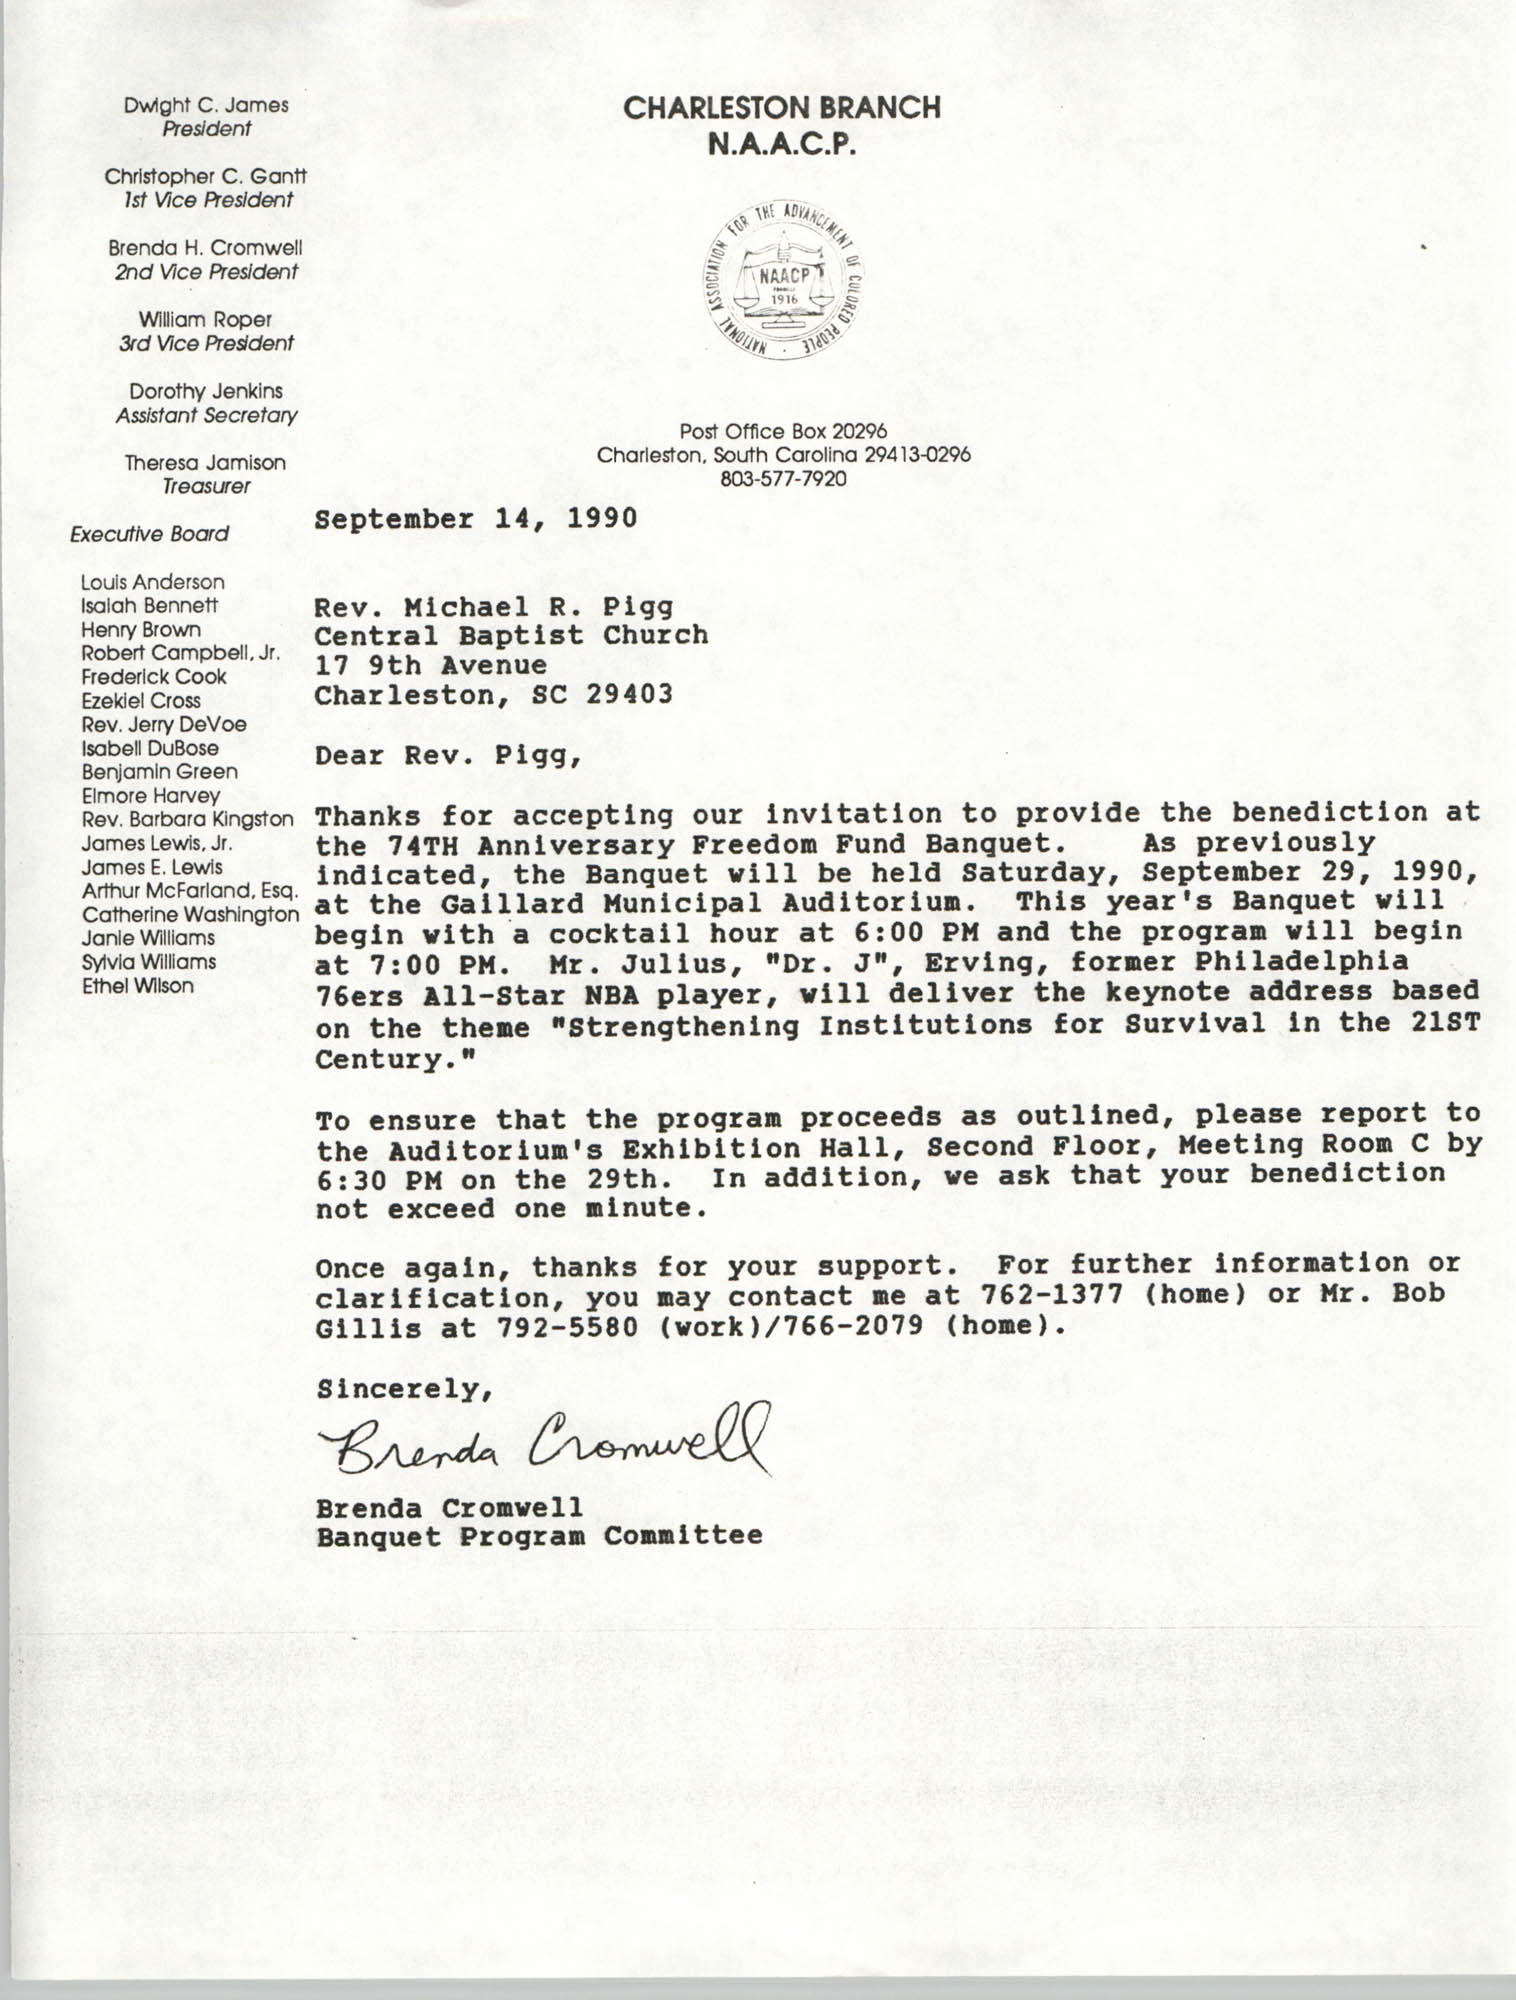 Letter from Brenda Cromwell to Rev. Michael R. Pigg, September 14, 1990